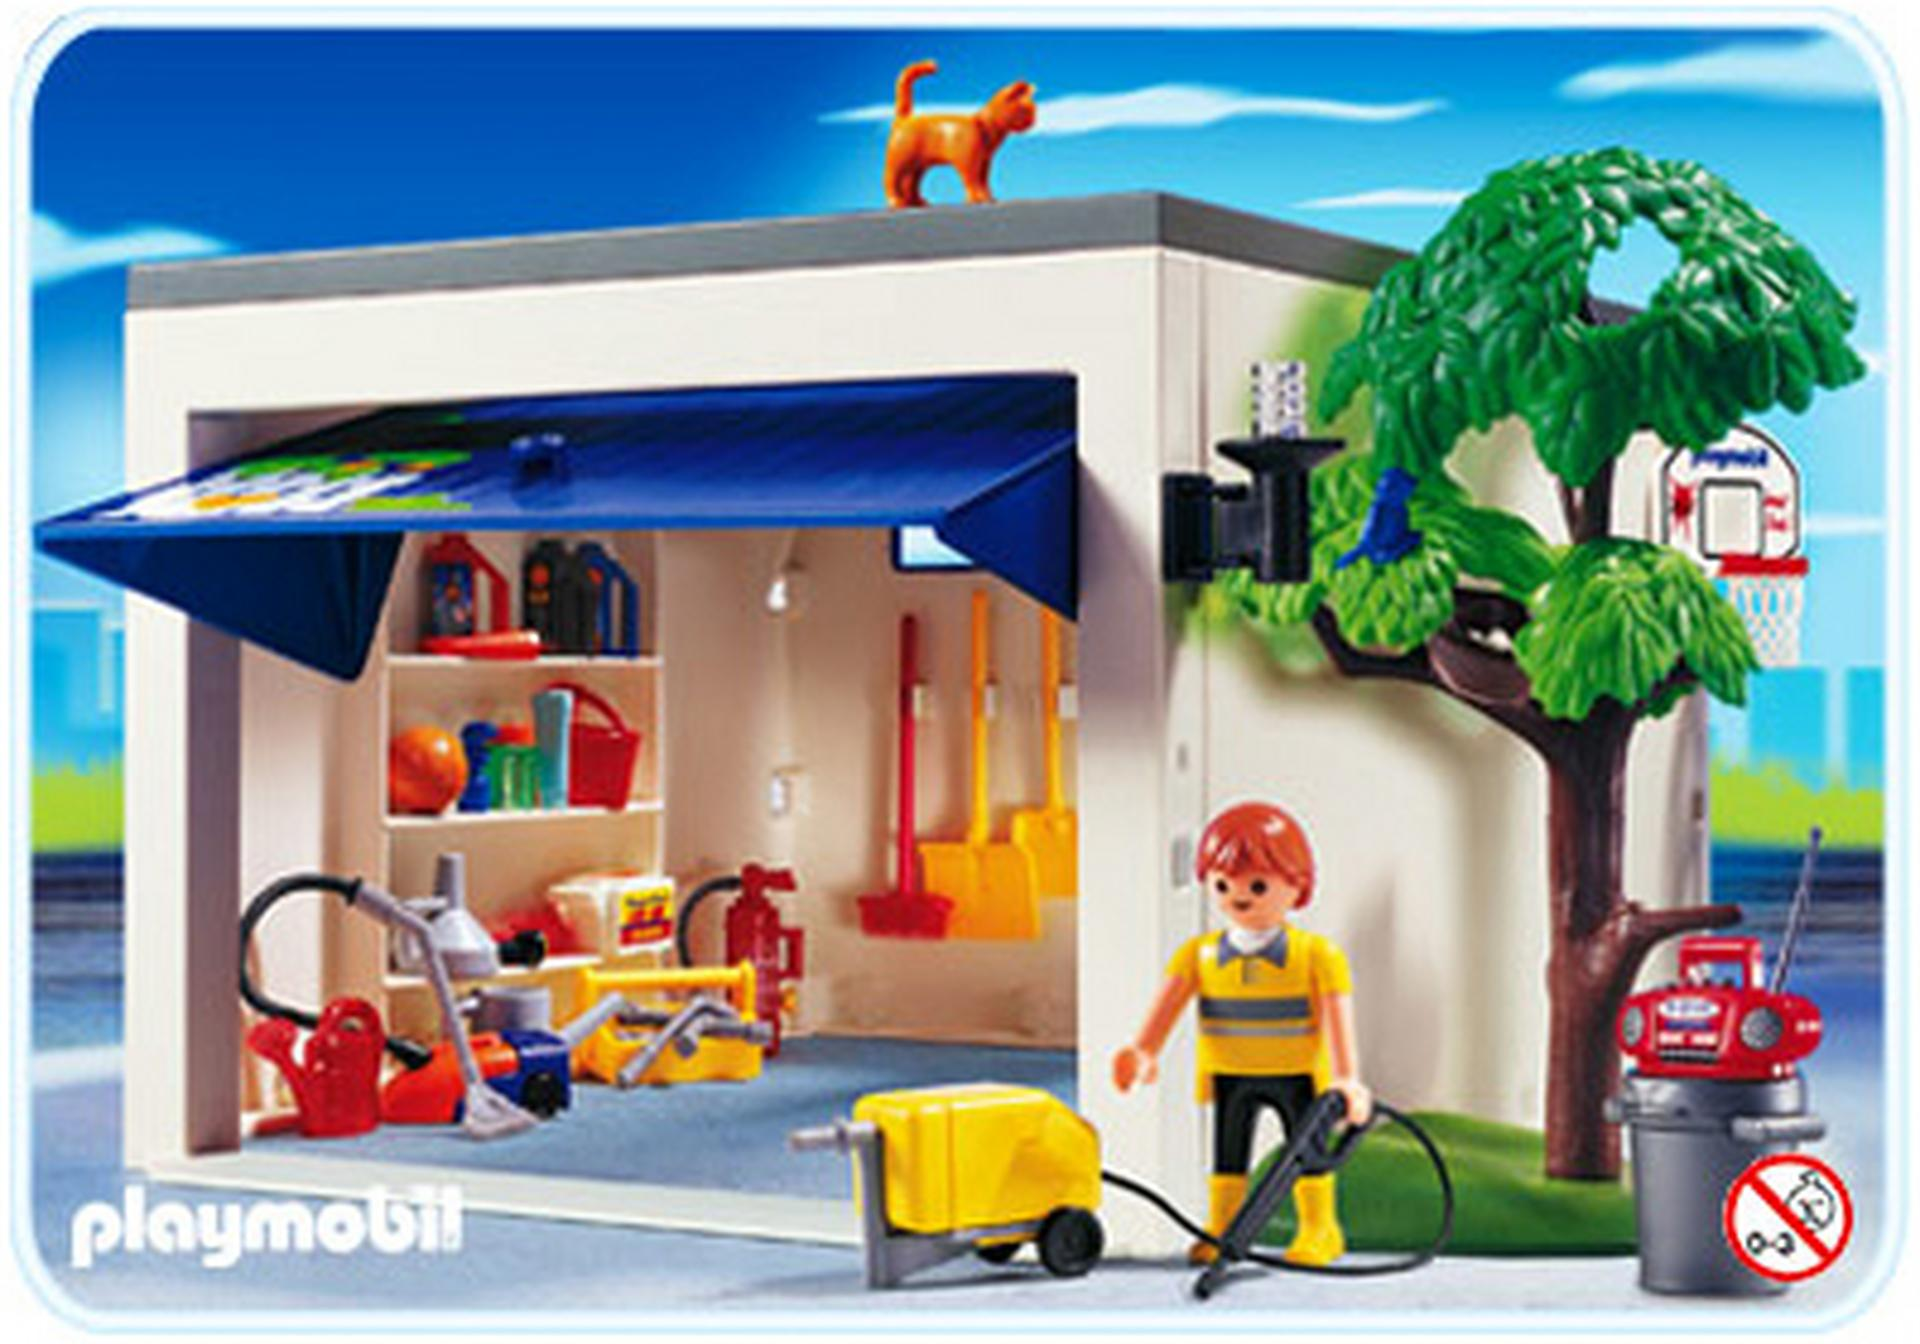 garage de la maison 4318 a playmobil france. Black Bedroom Furniture Sets. Home Design Ideas